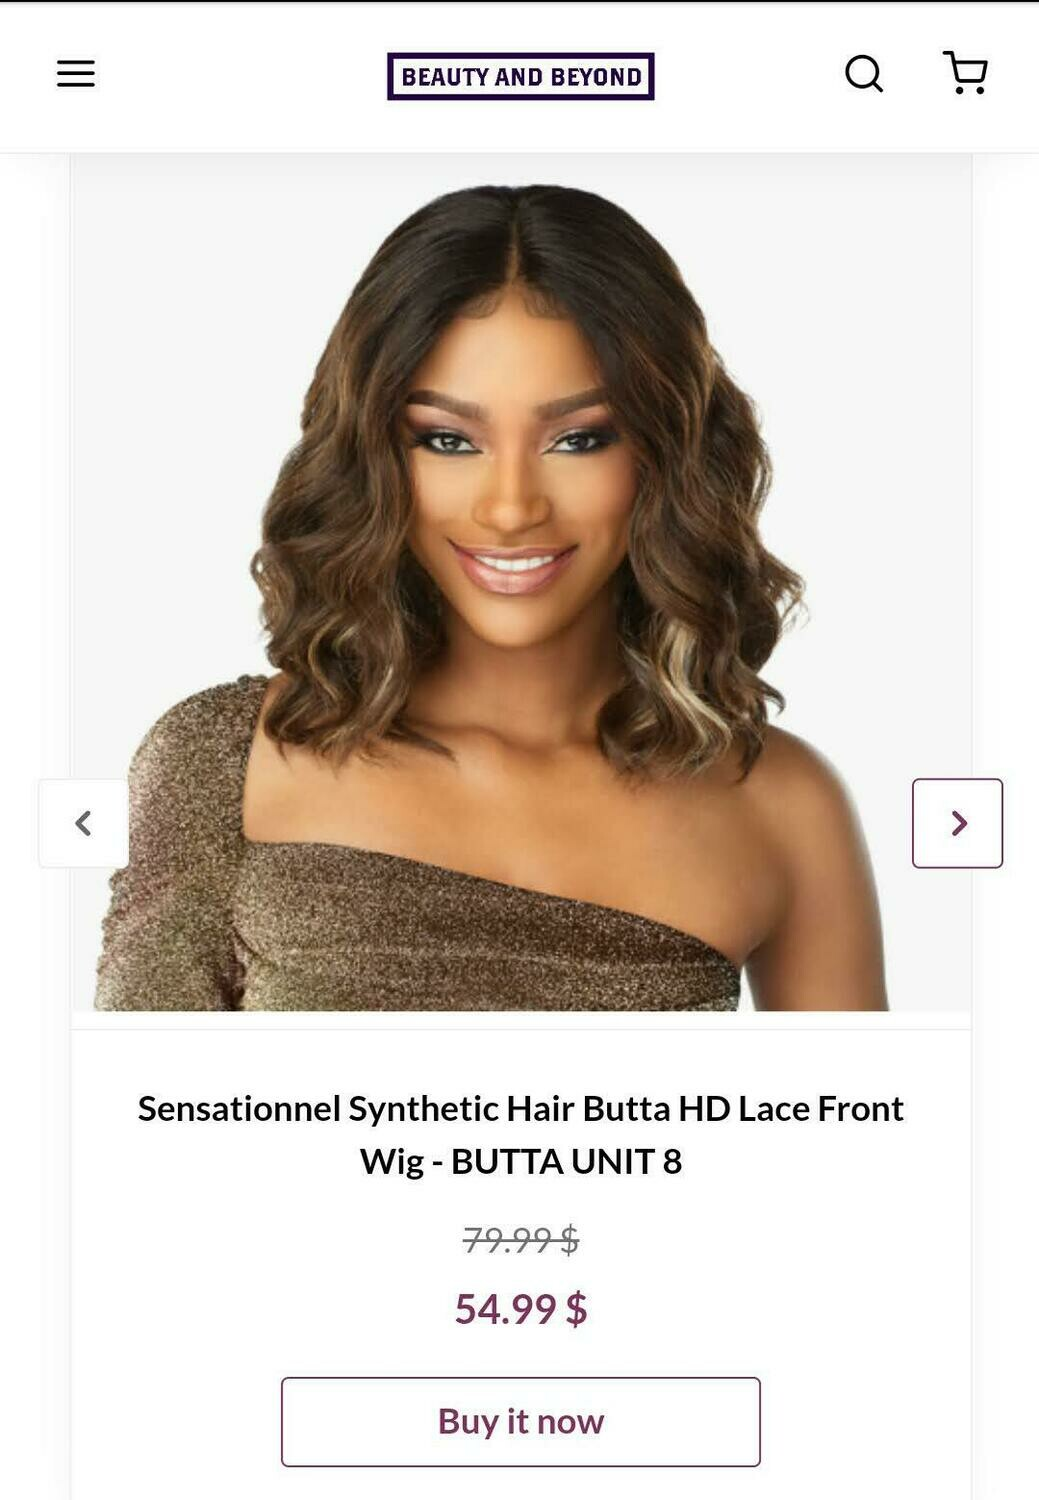 Sensational Synthetic Hair Butta HD Lace Front Wig- BUTTA UNIT 8